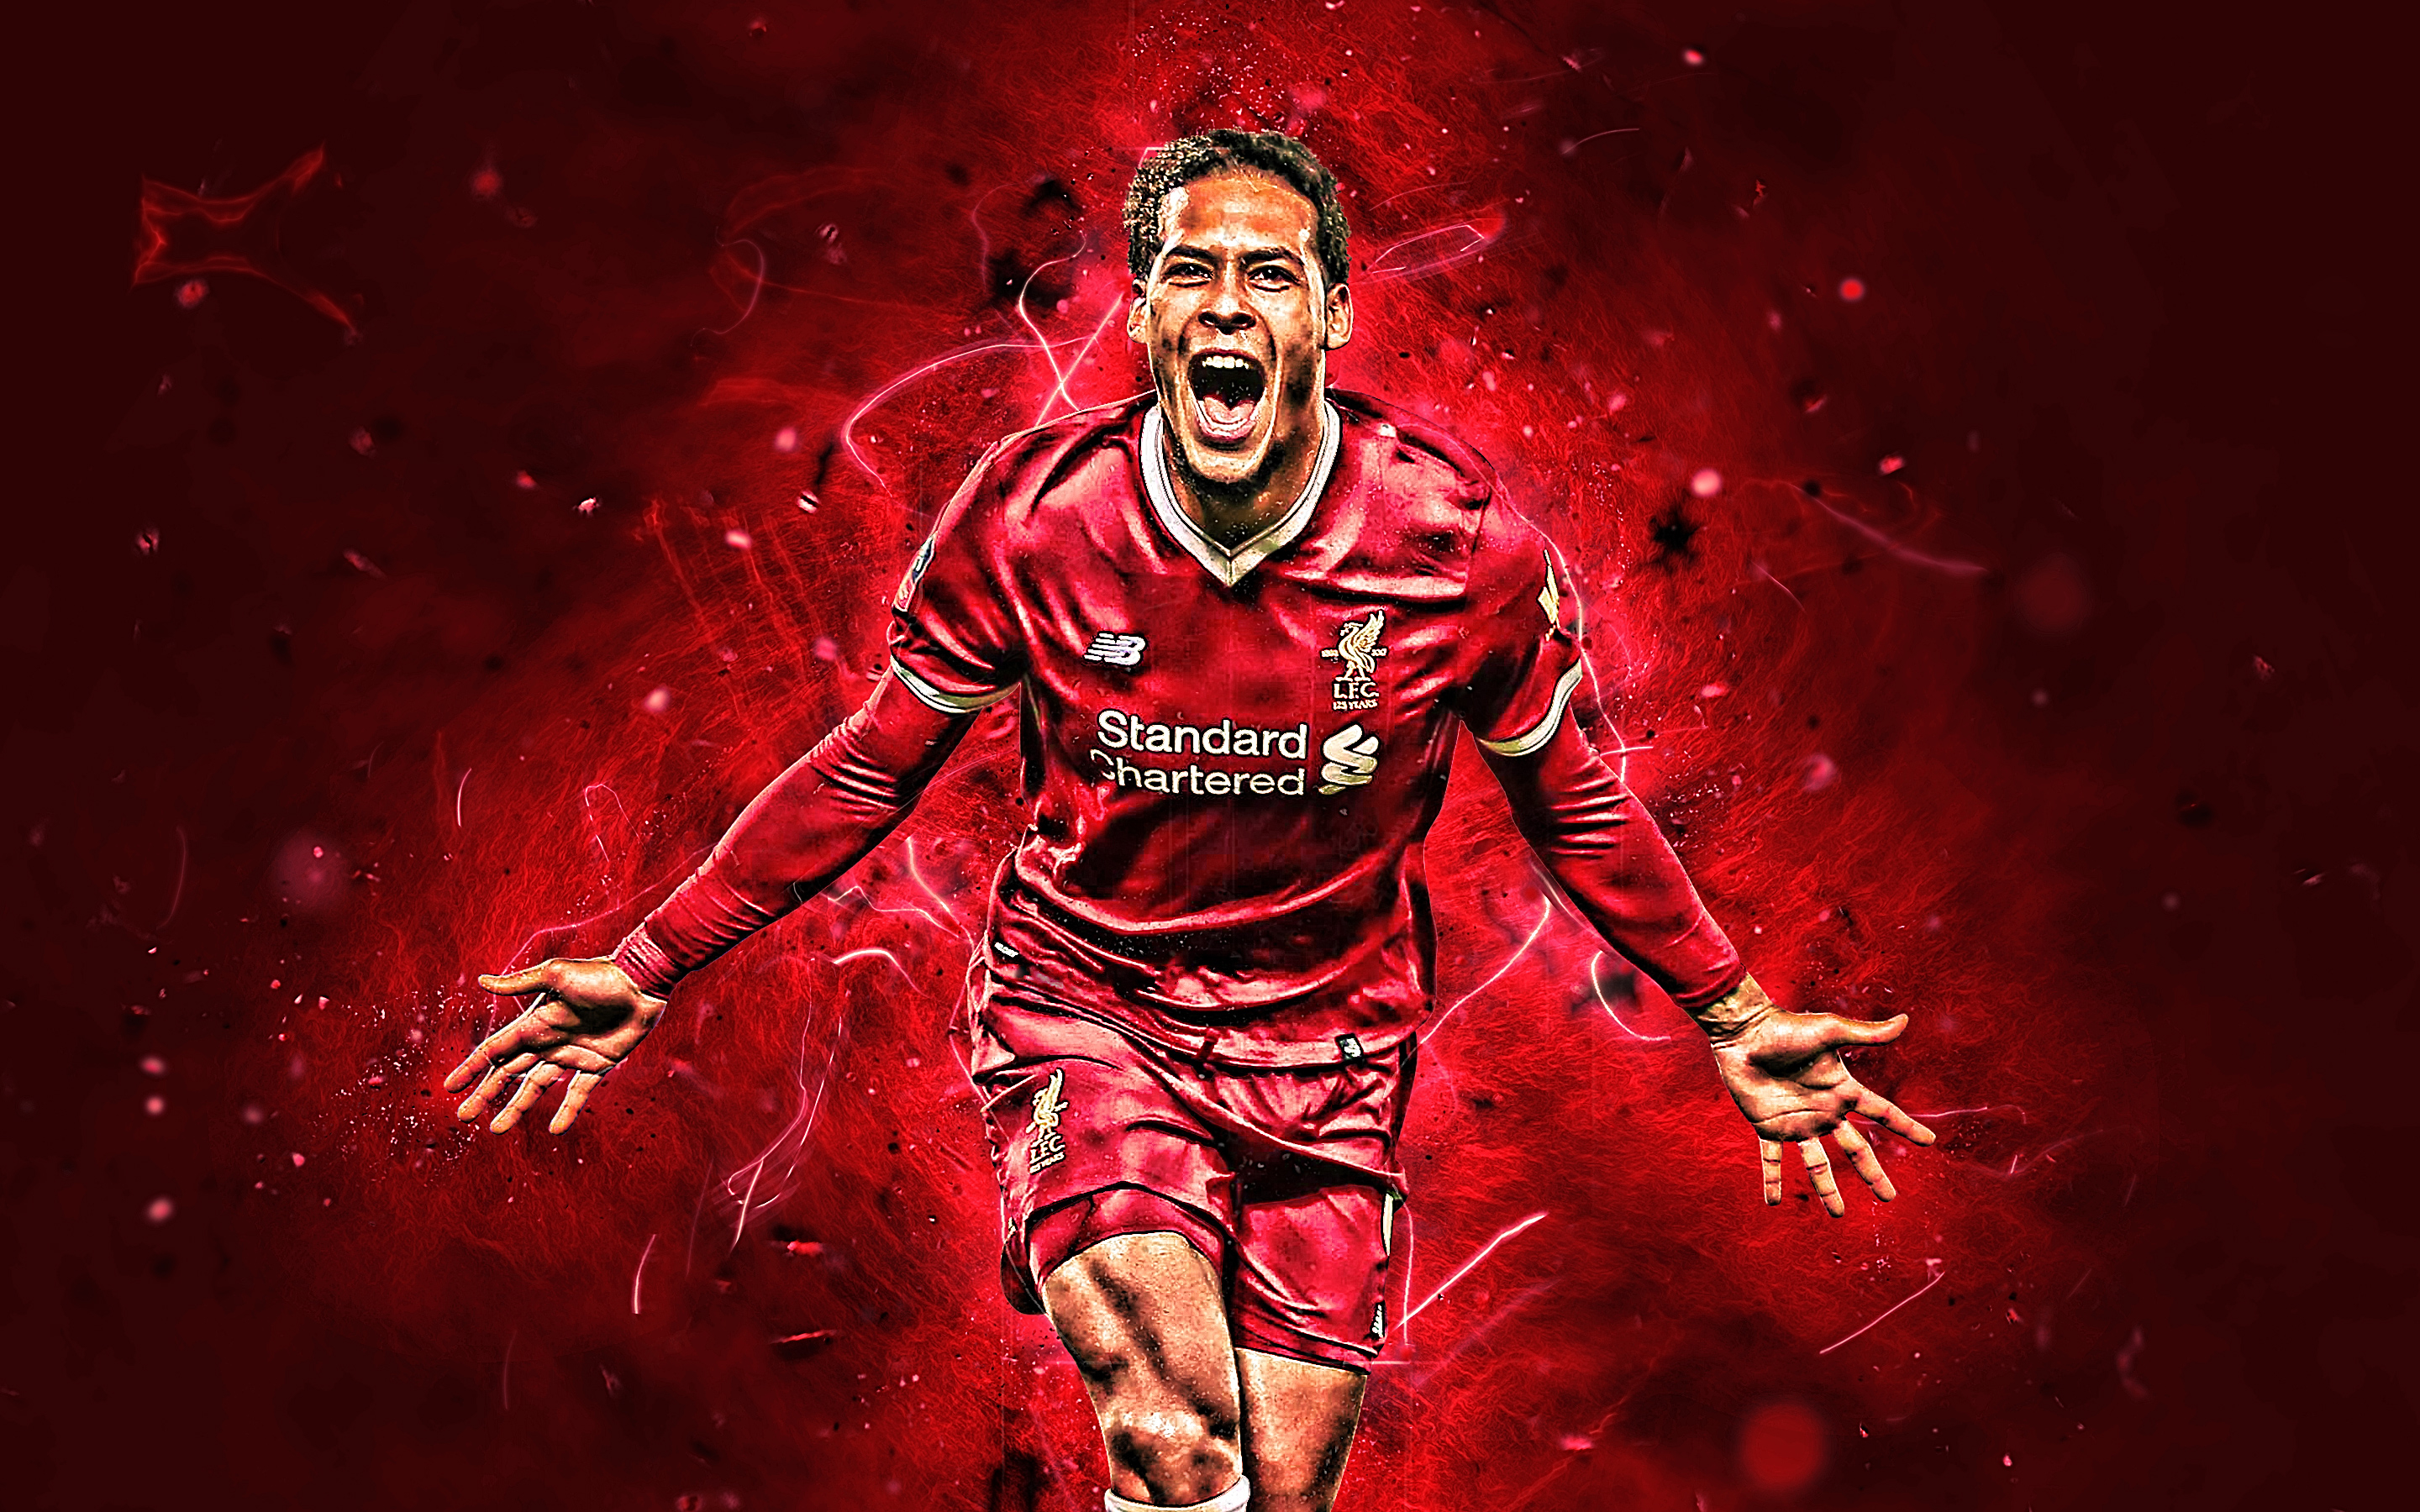 Virgil Van Dijk HD Wallpaper